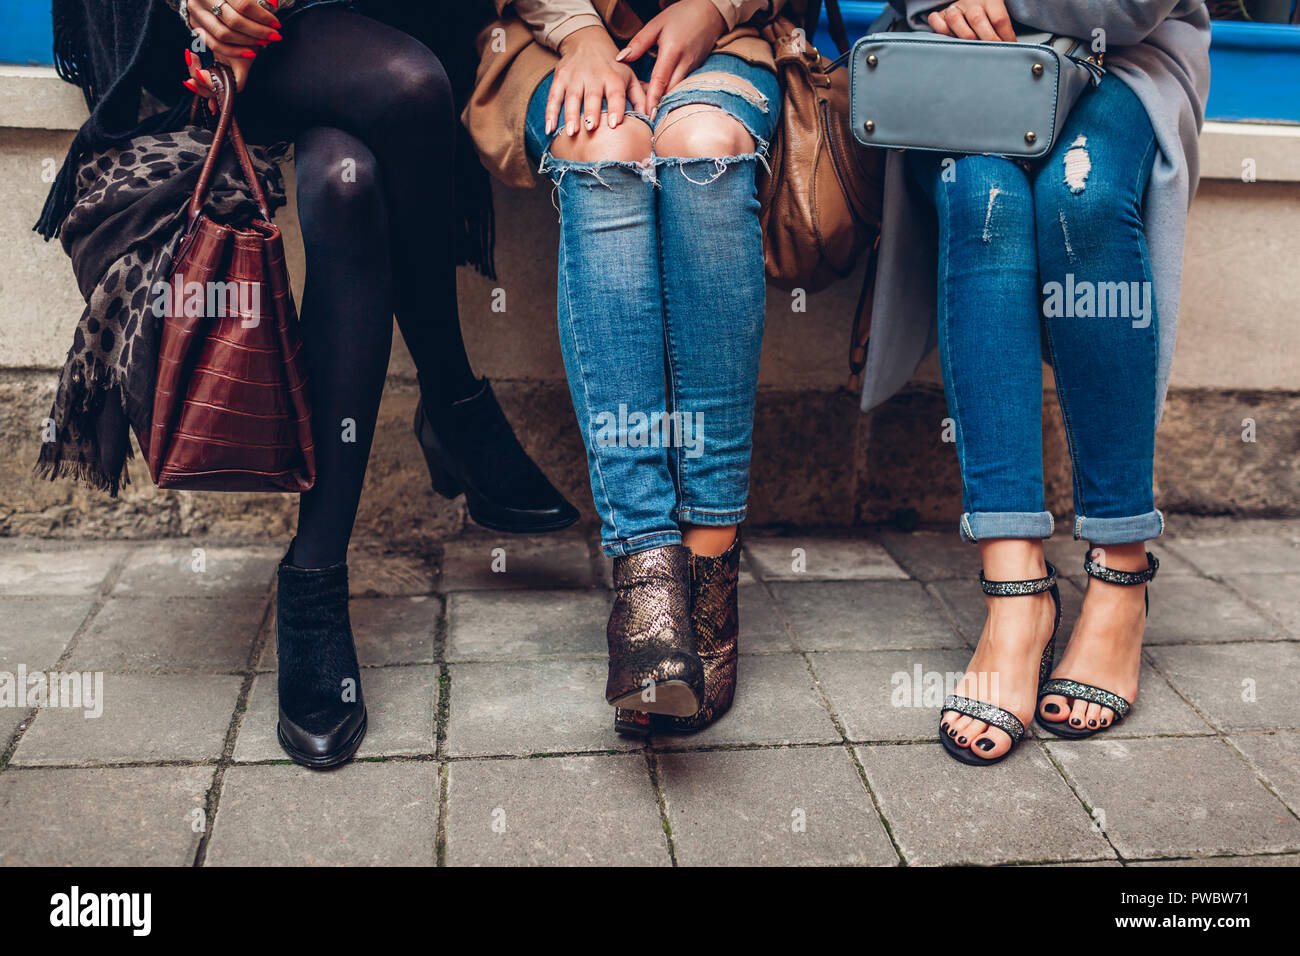 Three women wearing stylish shoes, clothing and accessories